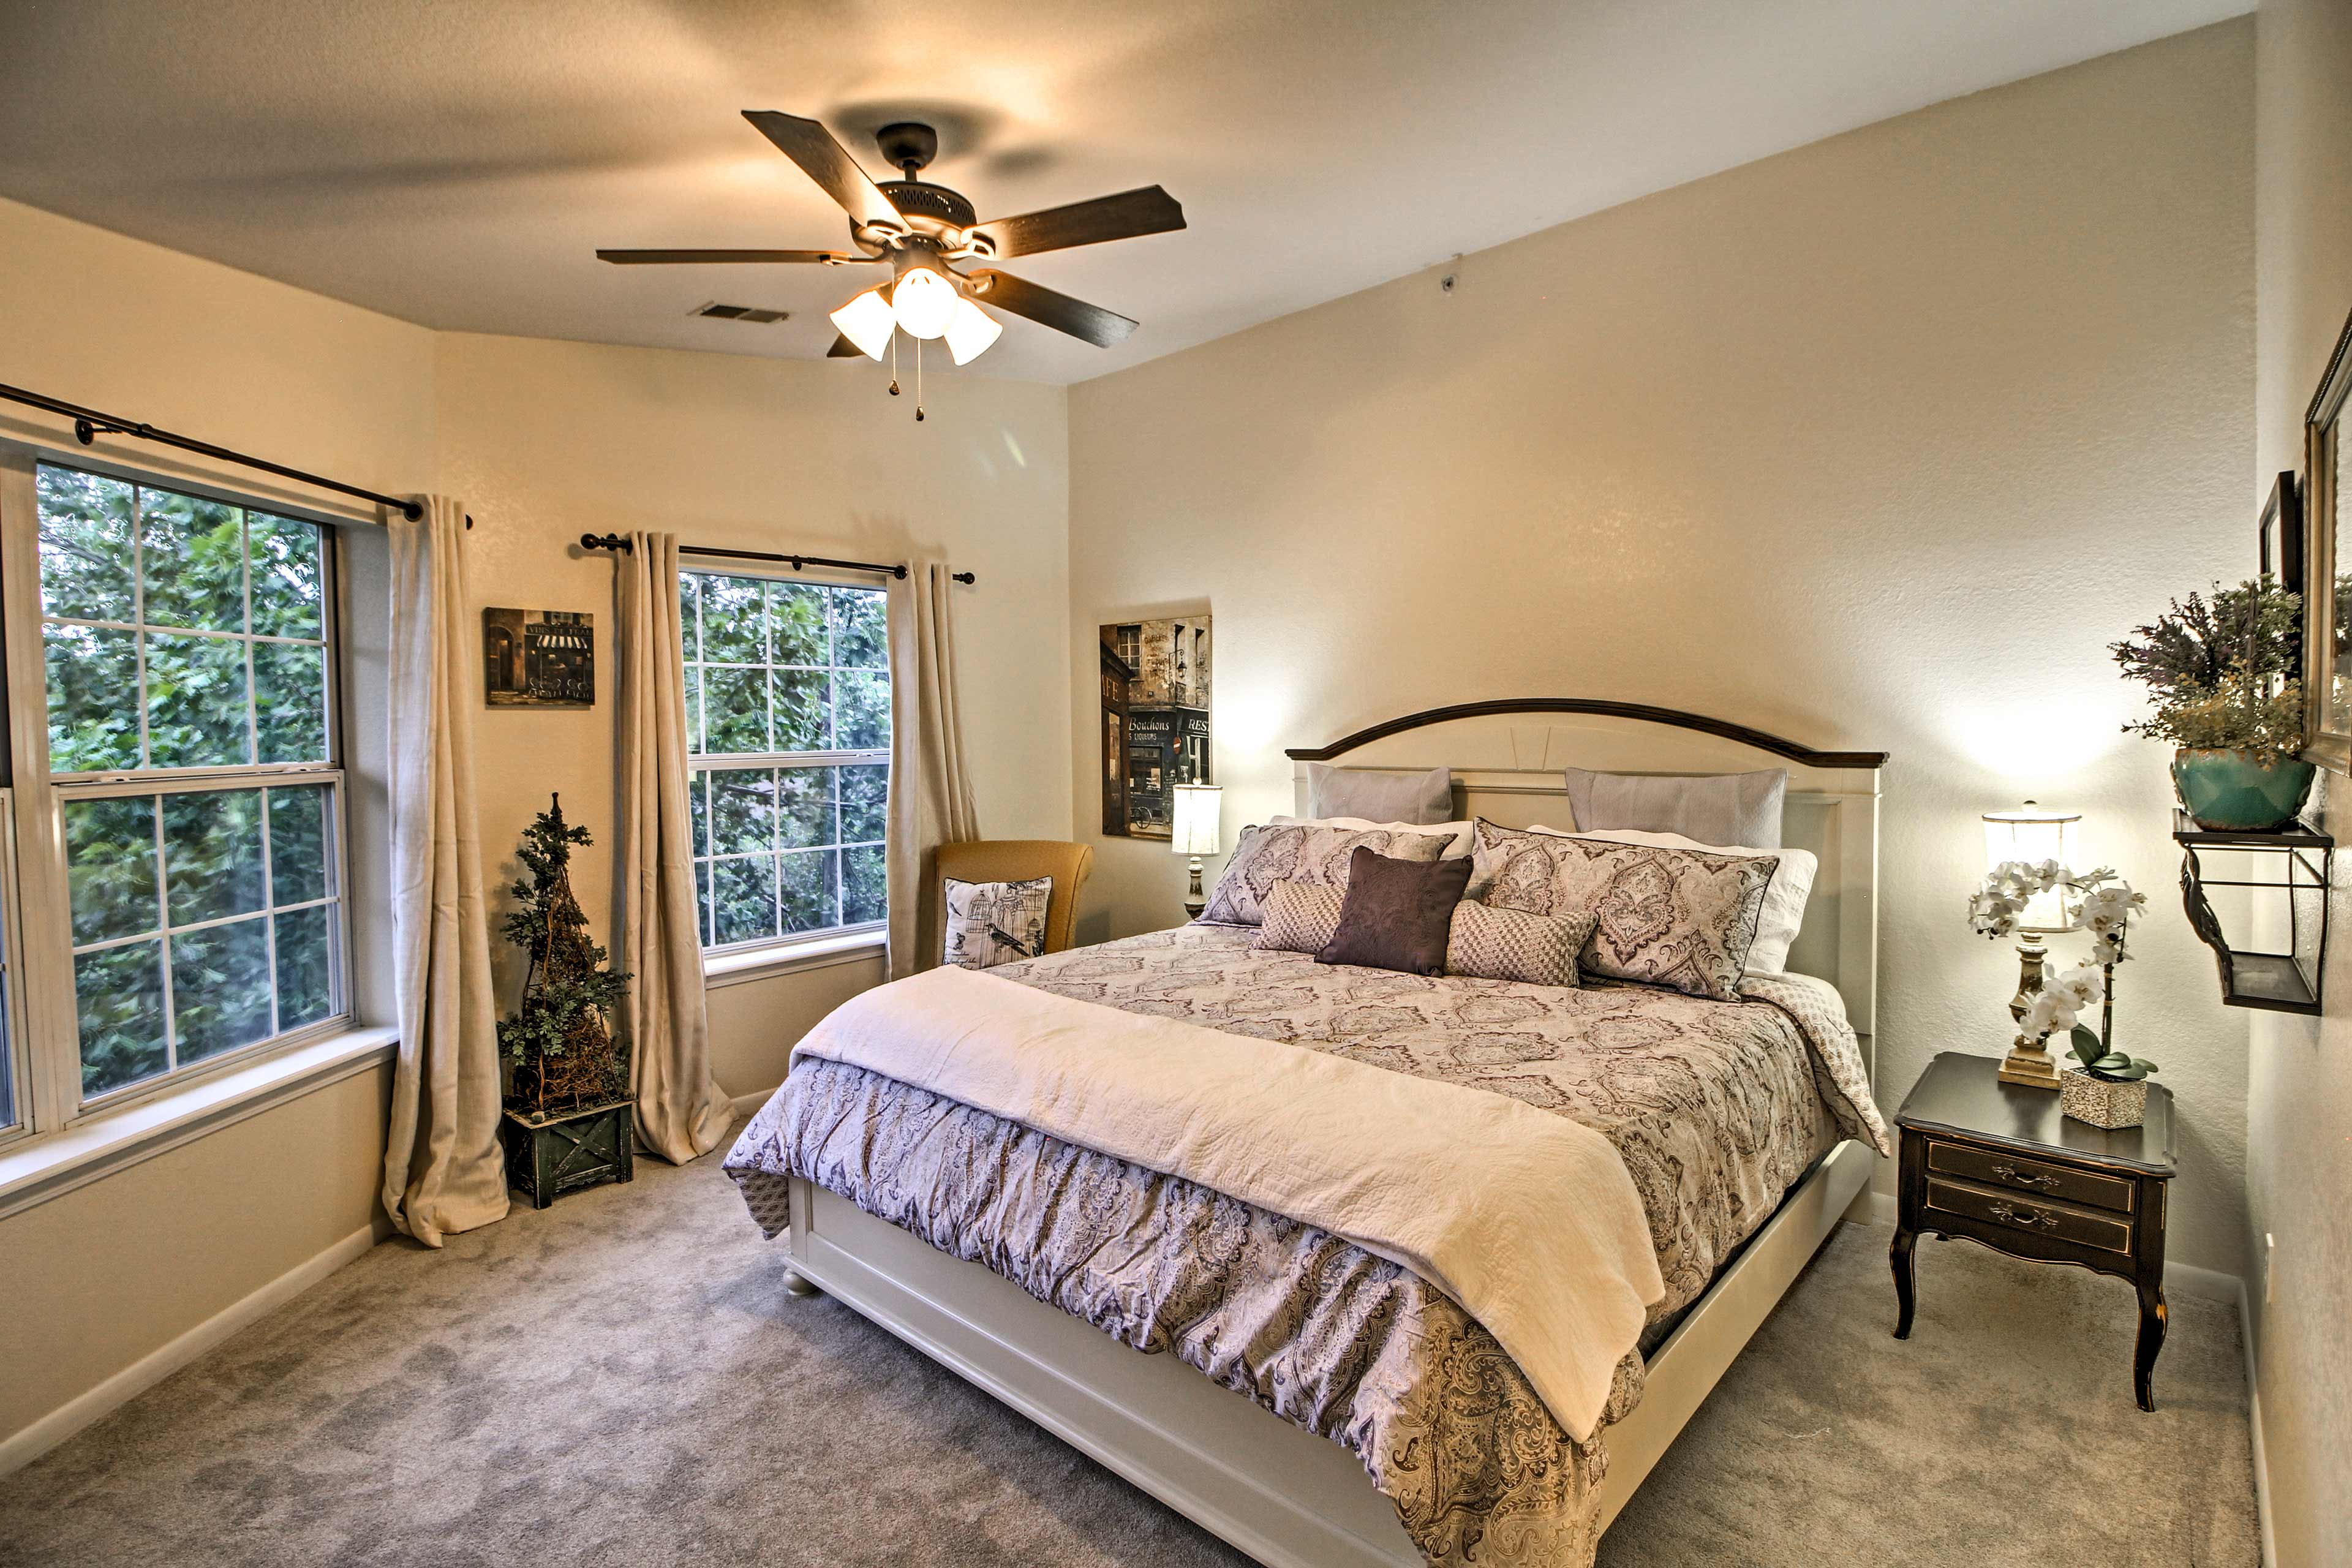 Fall back on the comfy king bed in the well-appointed master bedroom.